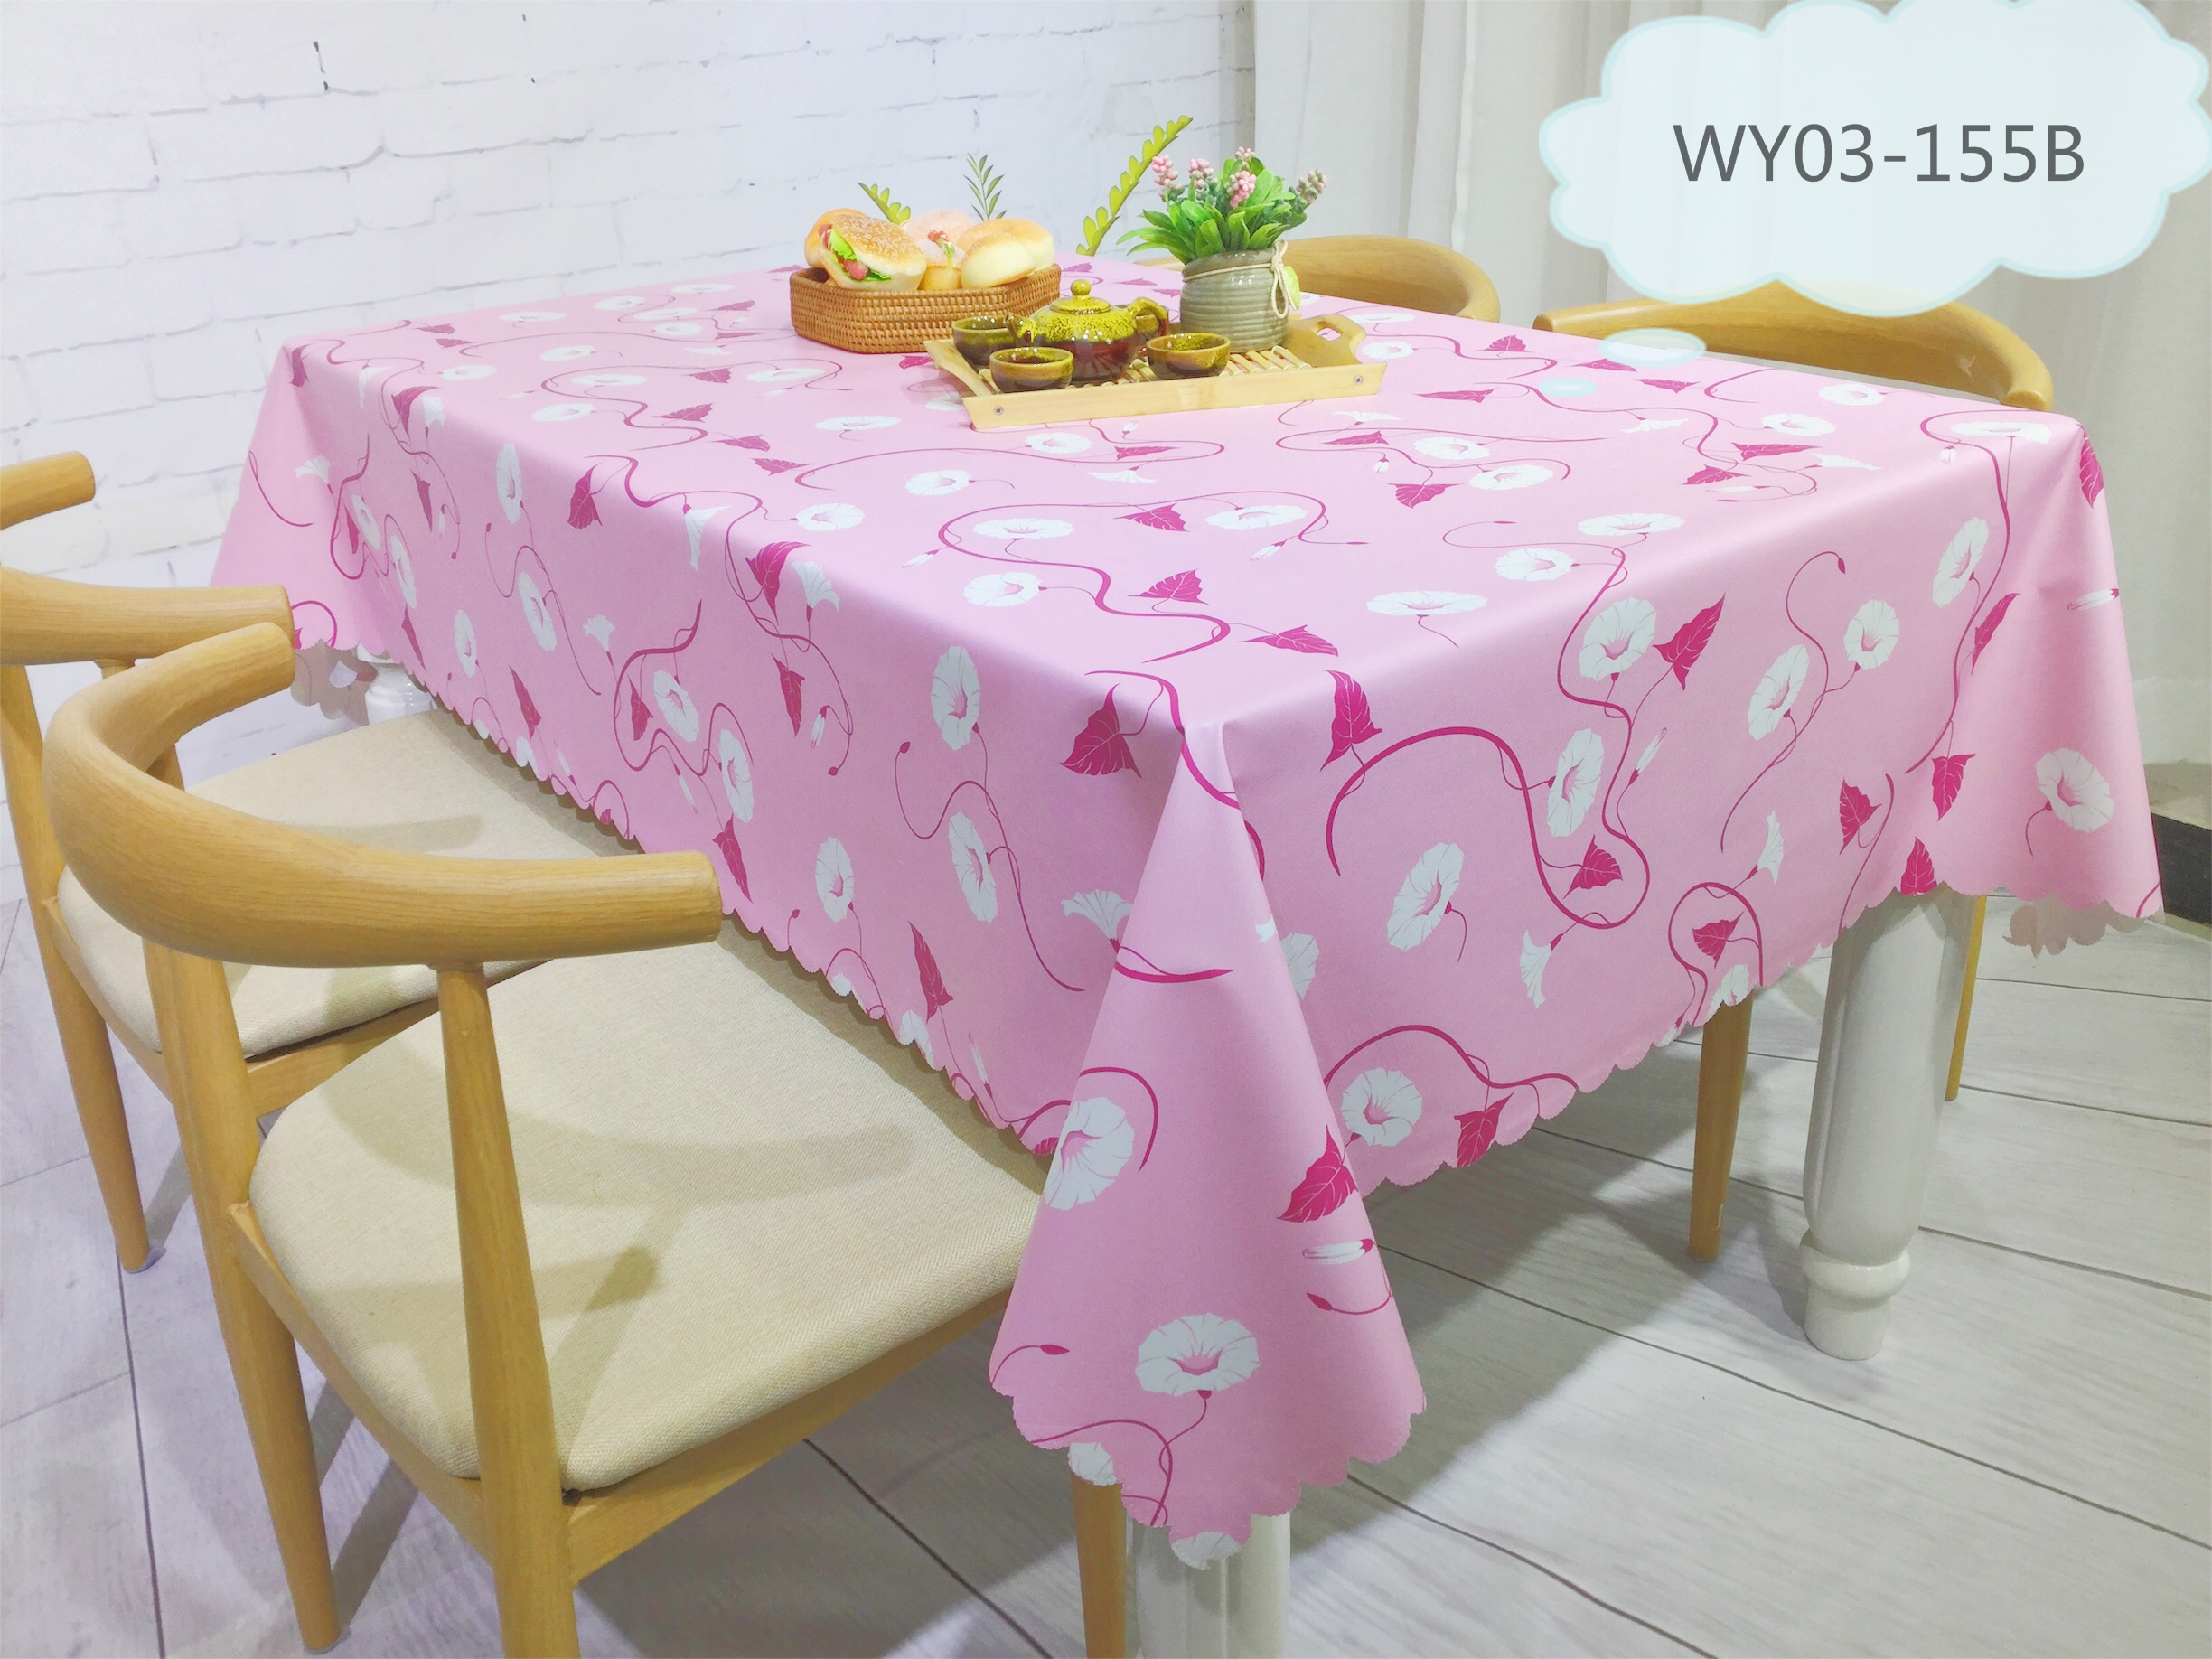 China manufacturer oilproof waterproof custom printed plastic tablecloth